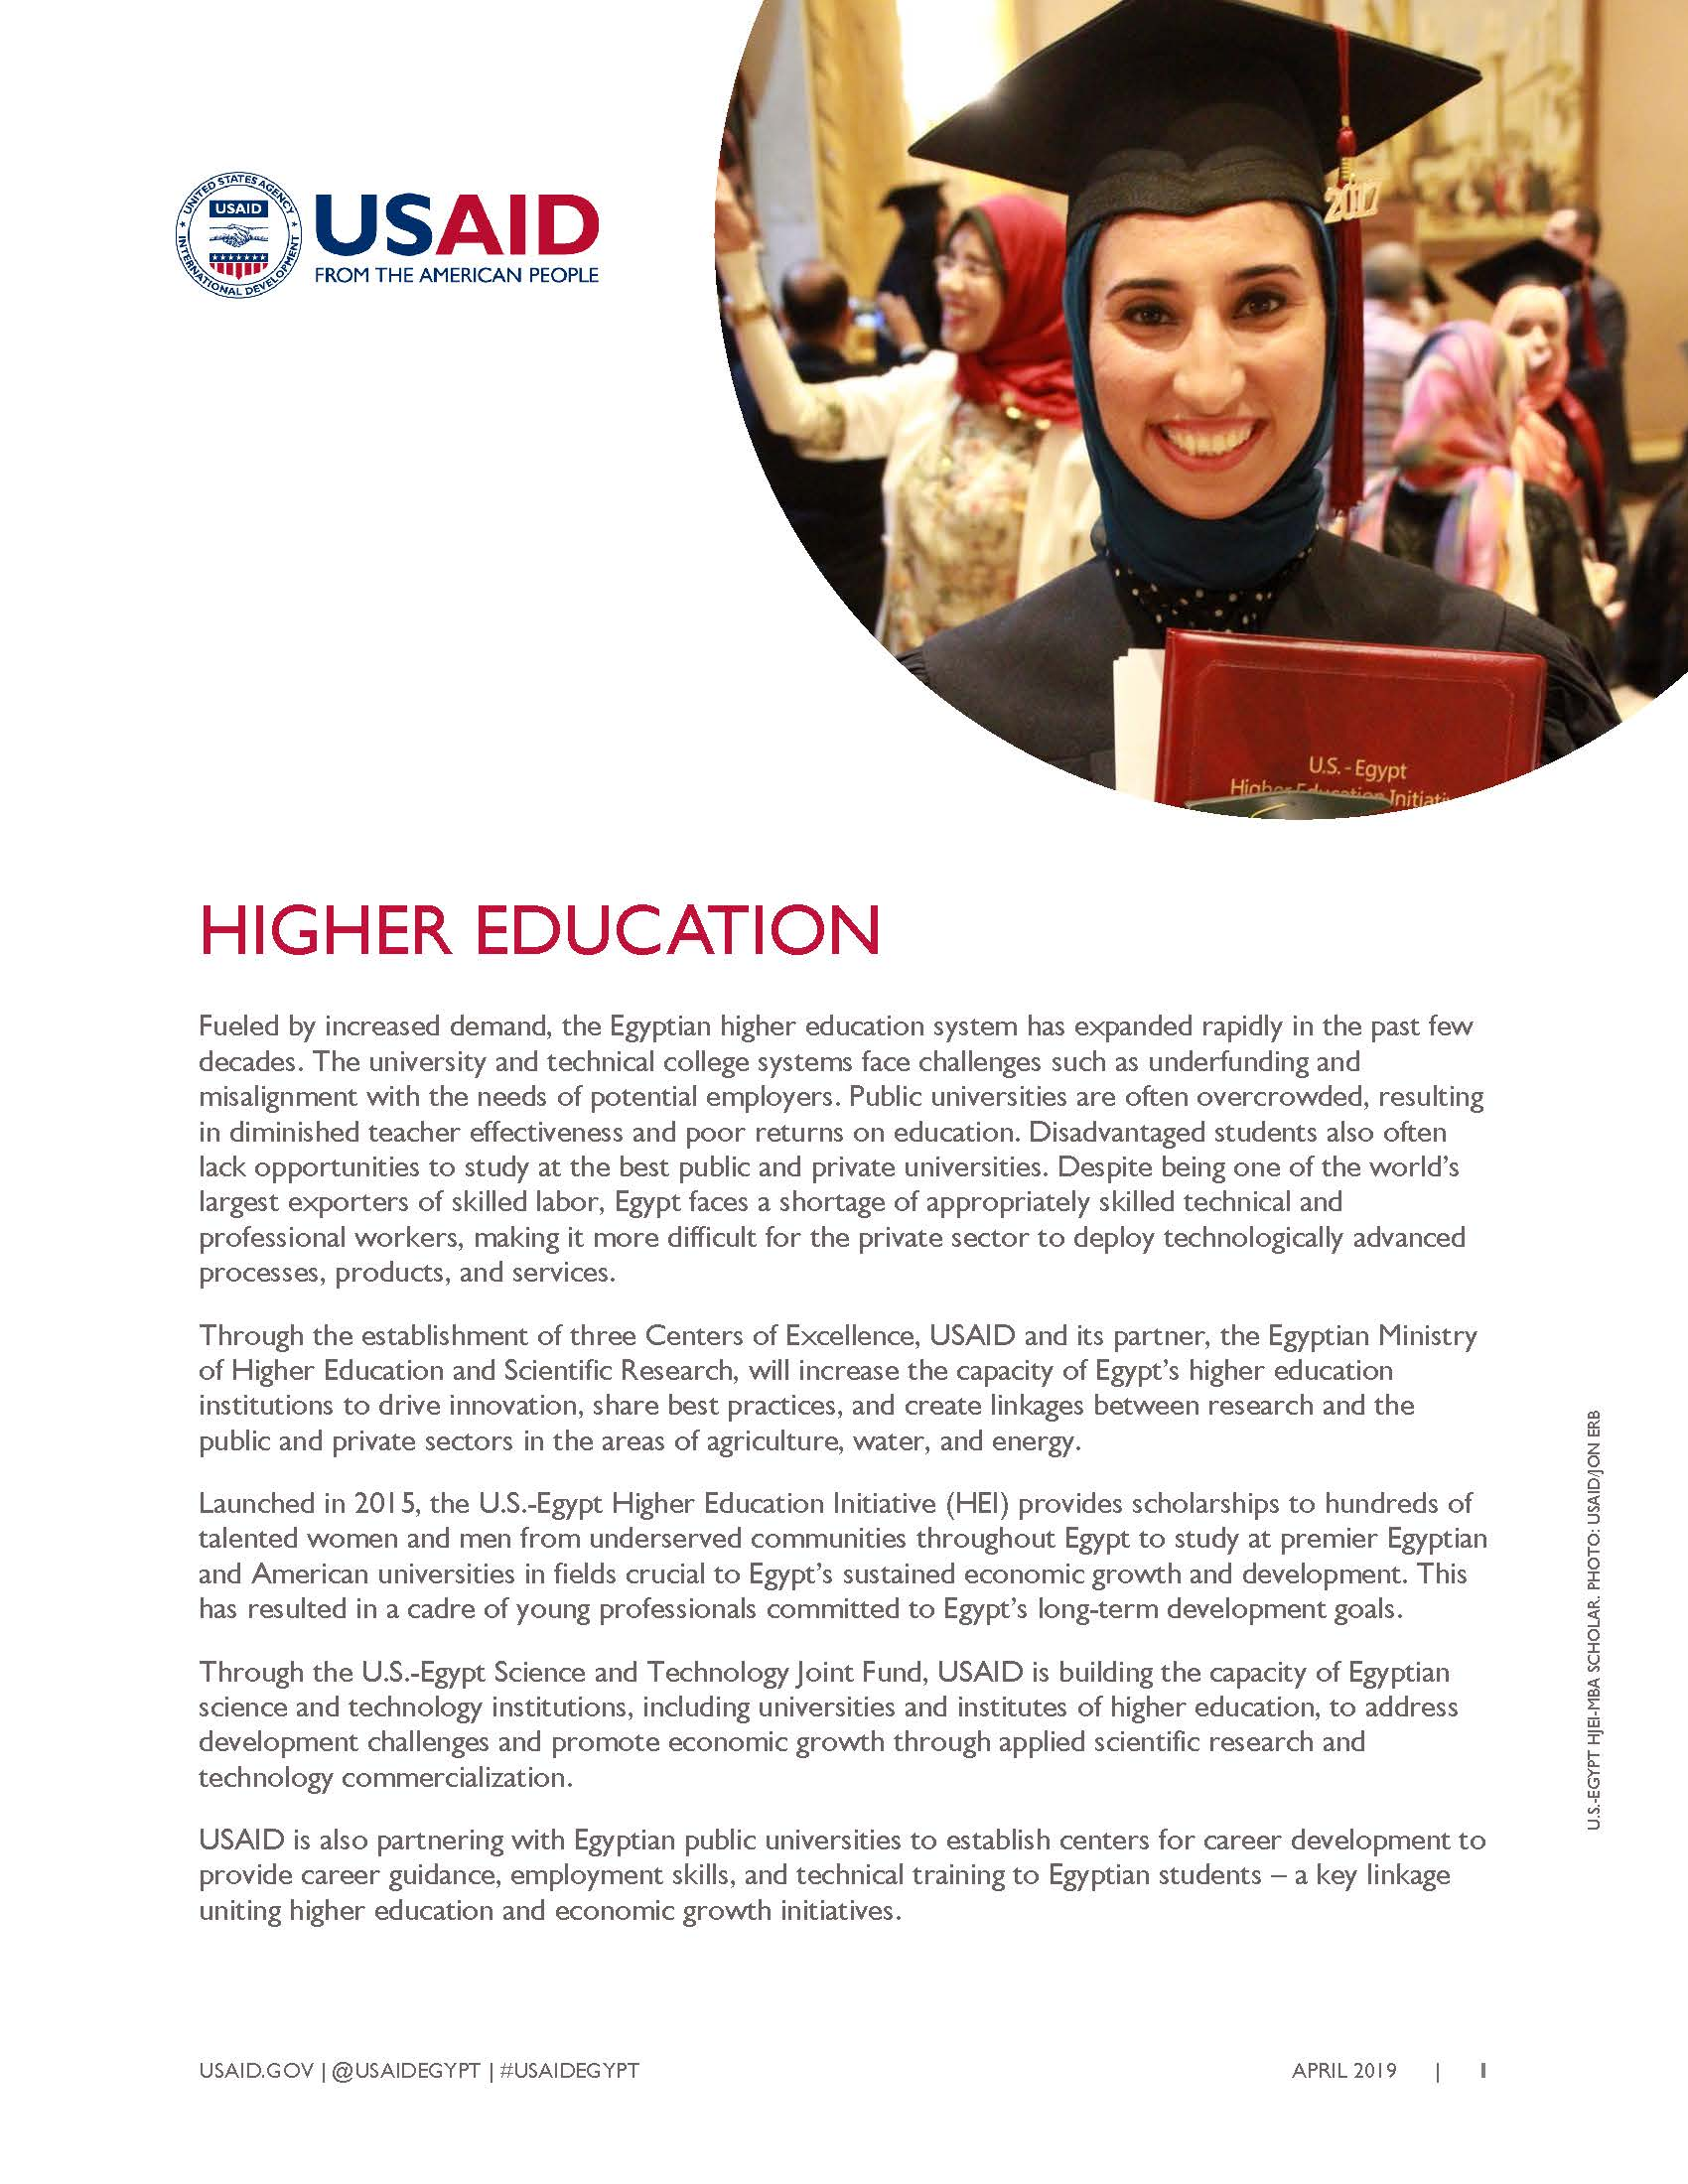 USAID/Egypt Higher Education Fact Sheet